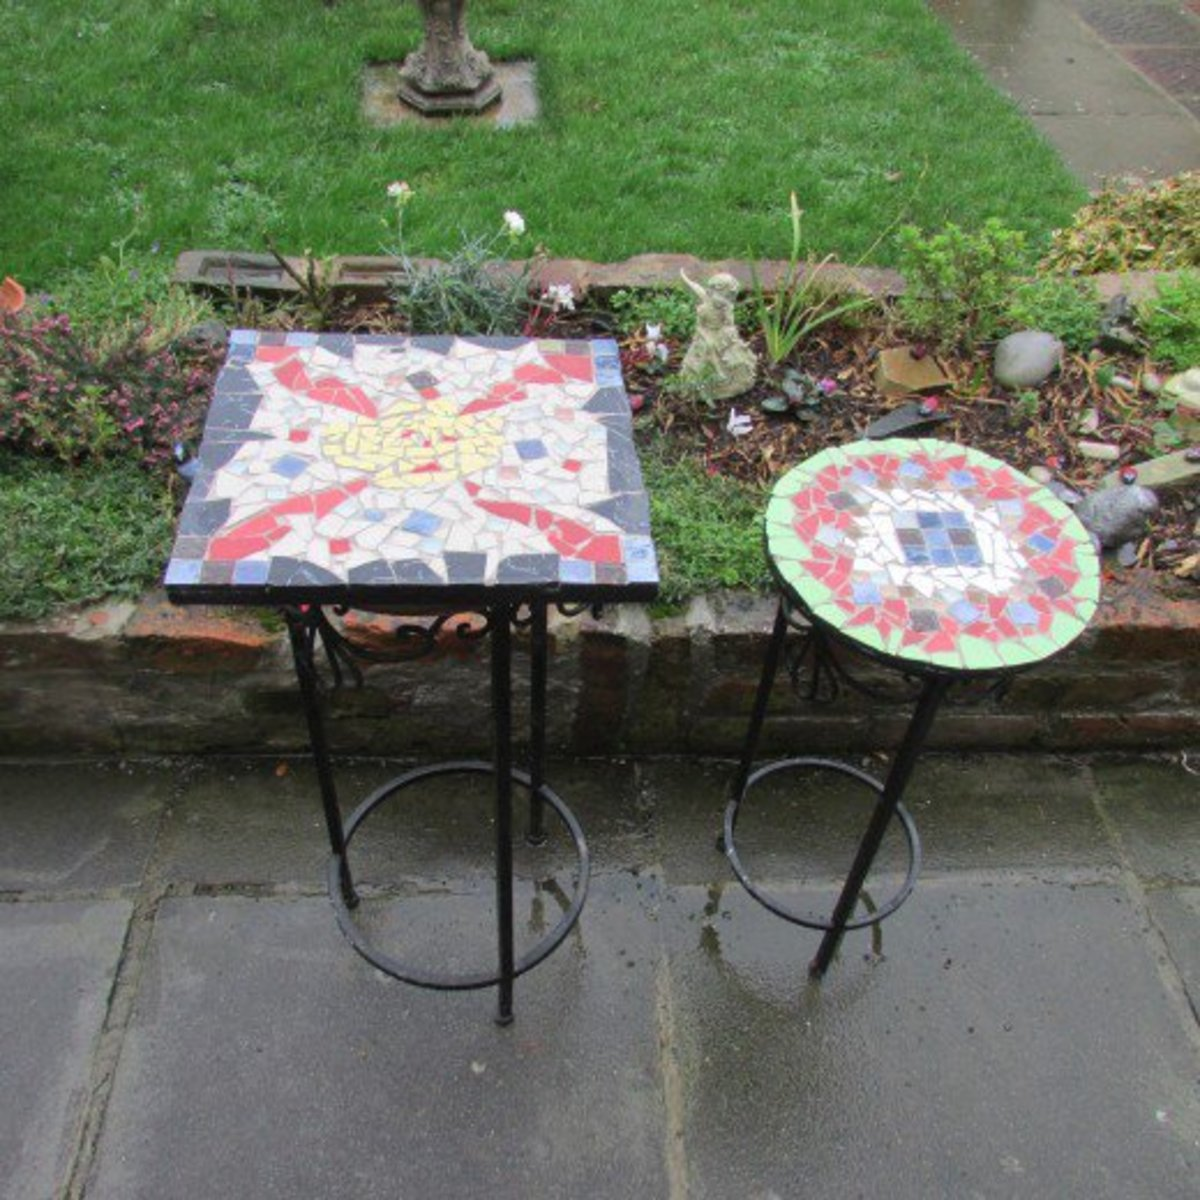 How to make Mosaic designs on tables